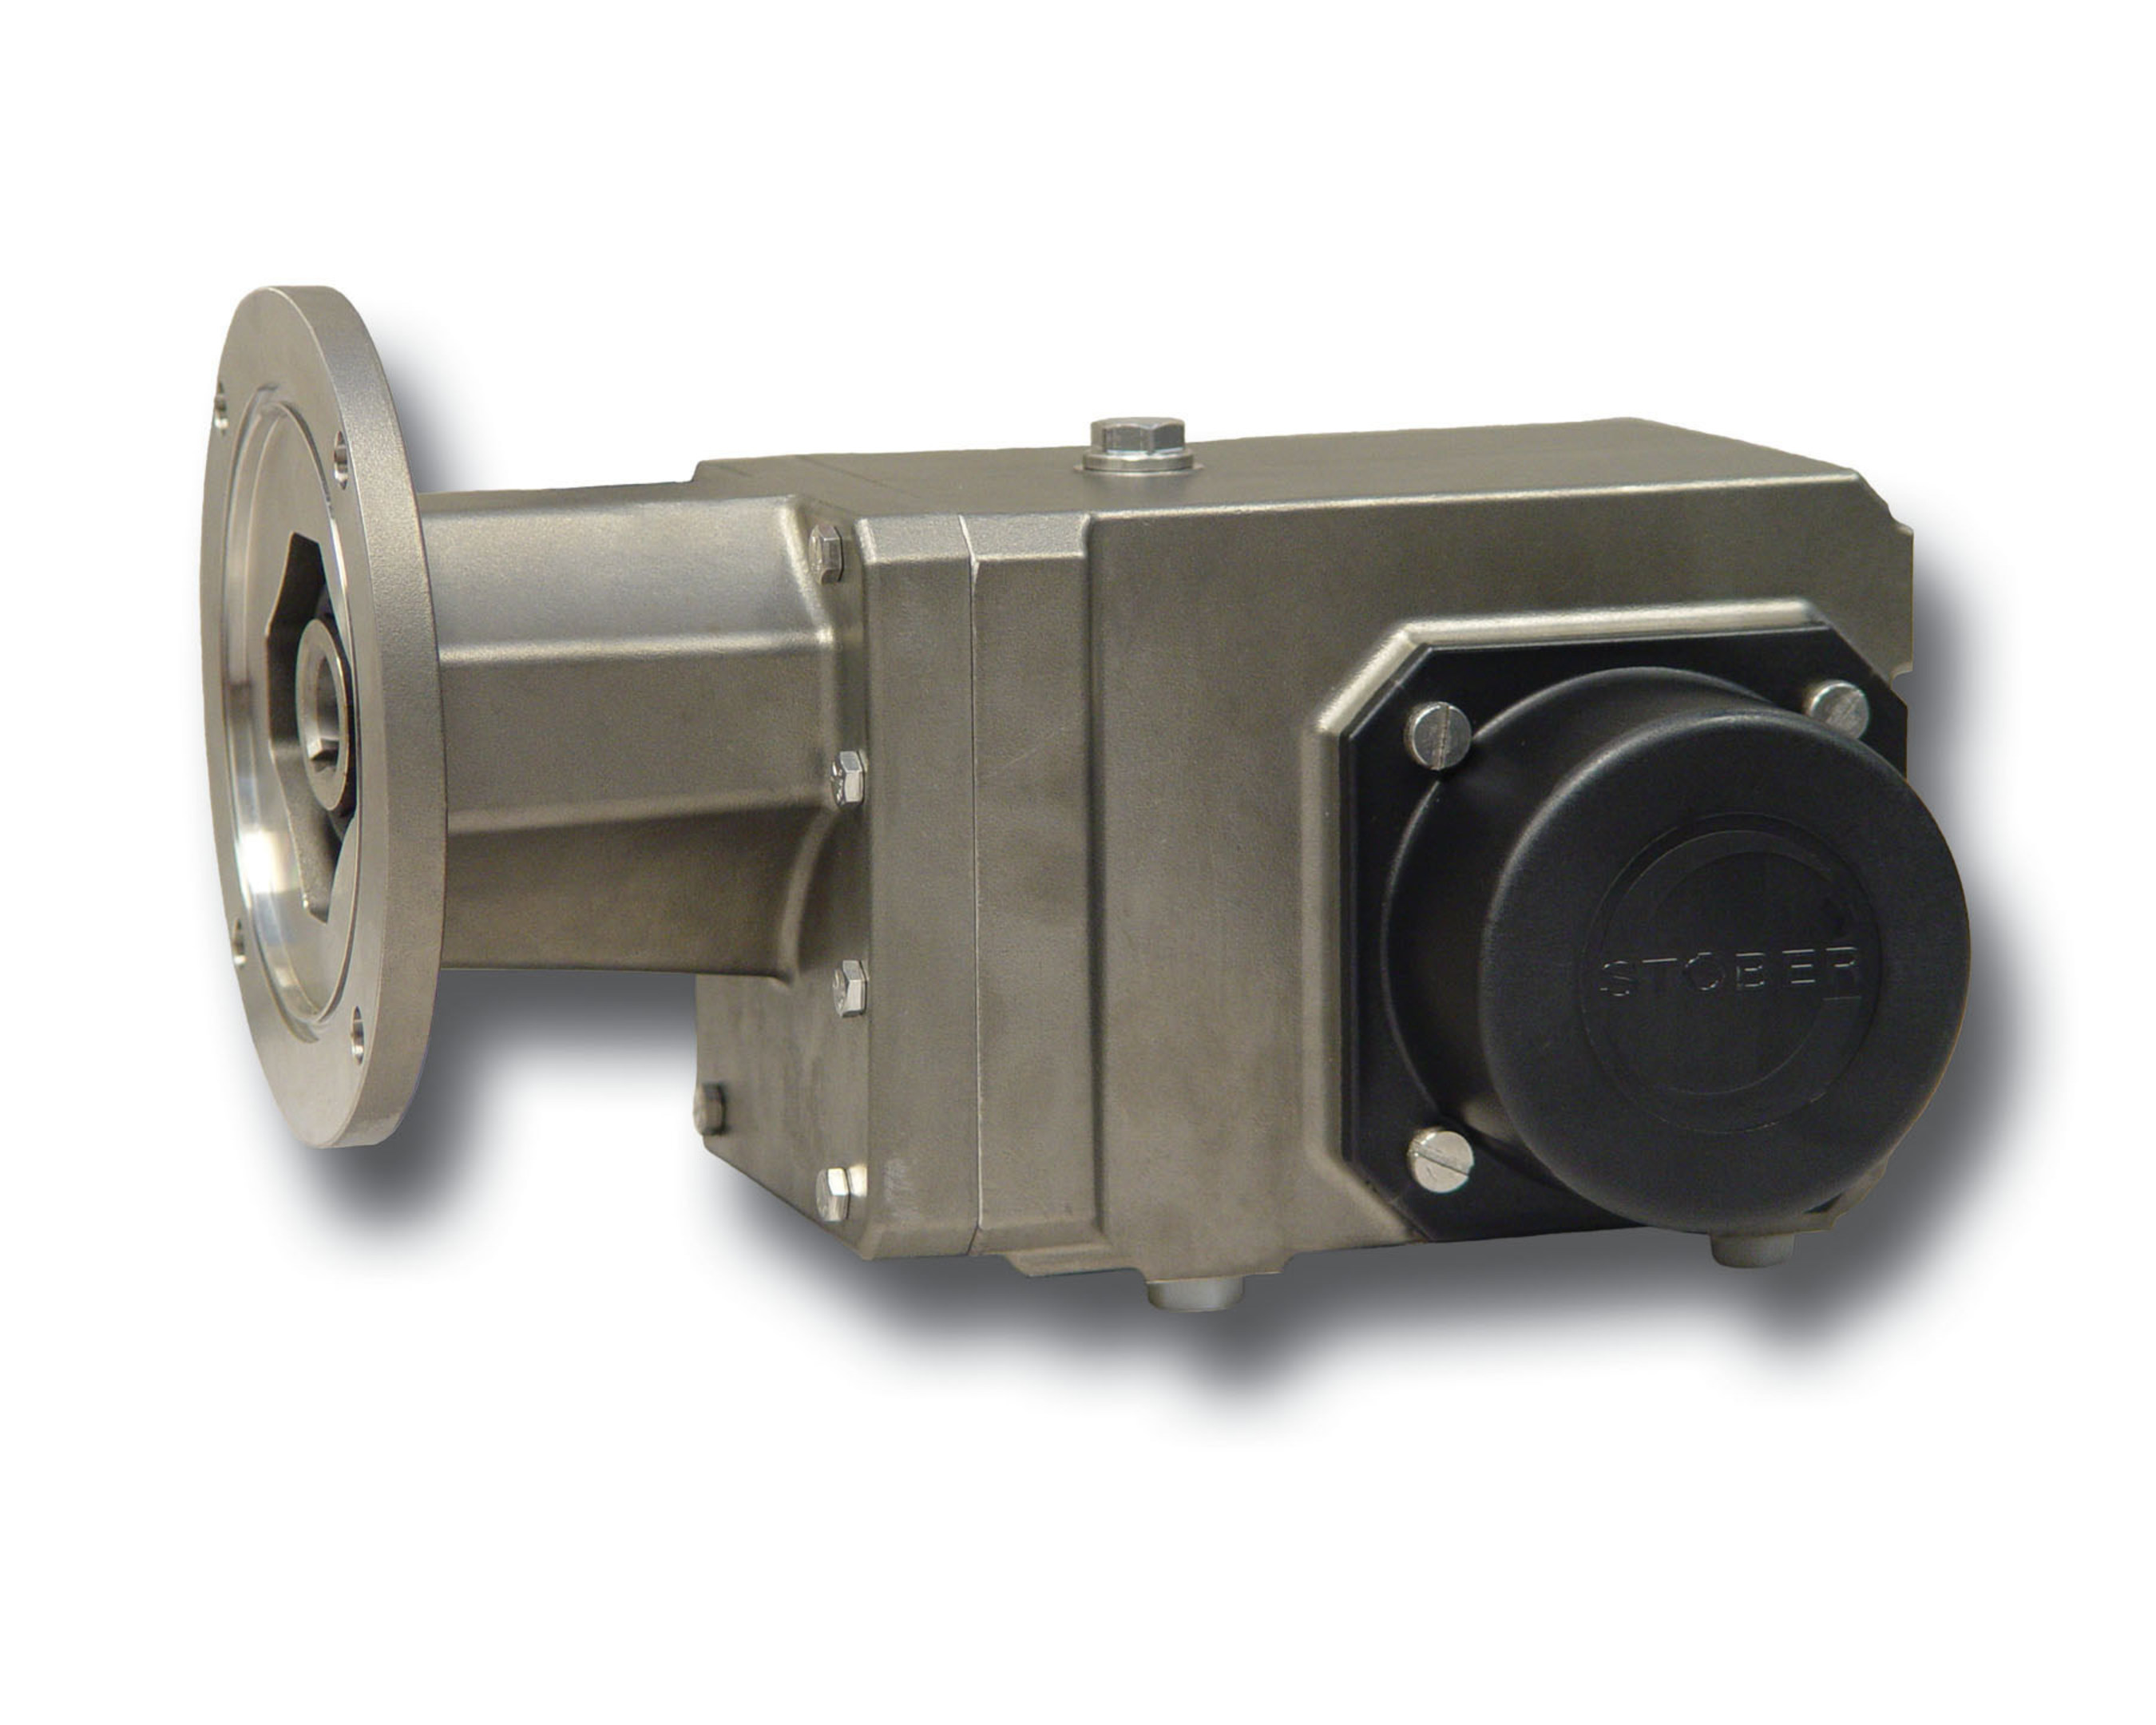 STOBER KSS right angle helical bevel gearbox